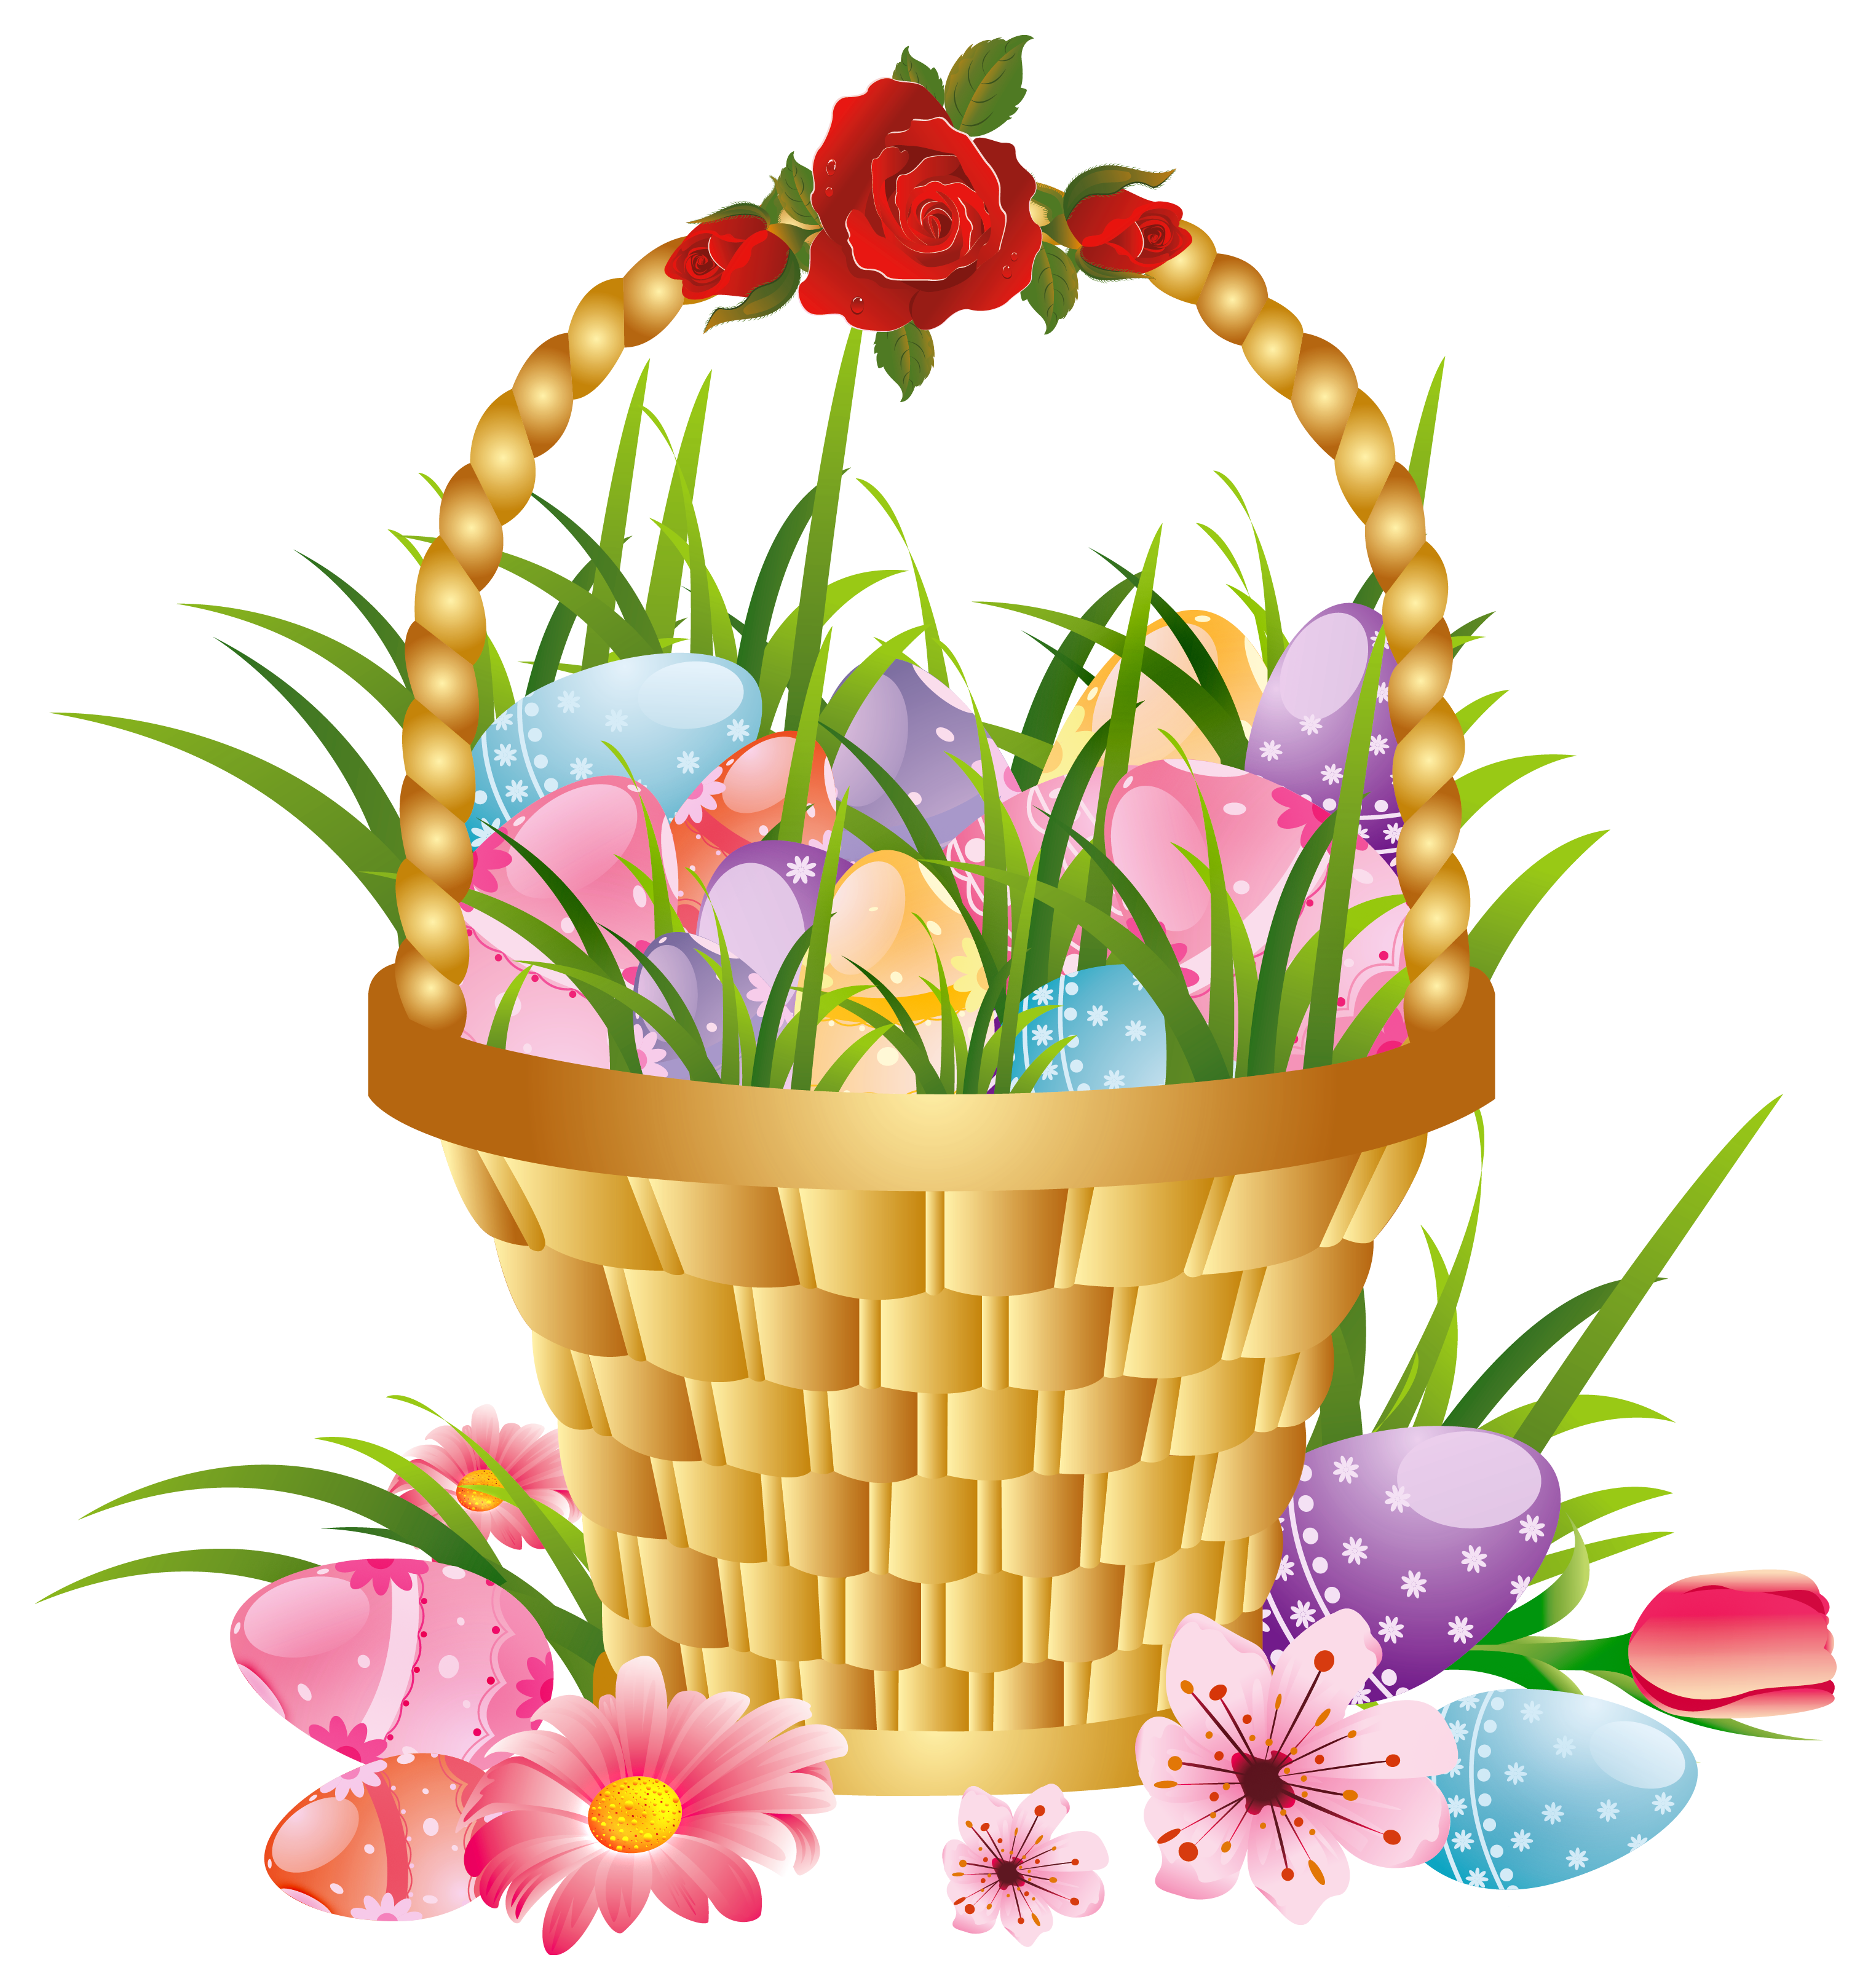 Easter clipart transparent background. Basket with eggs and